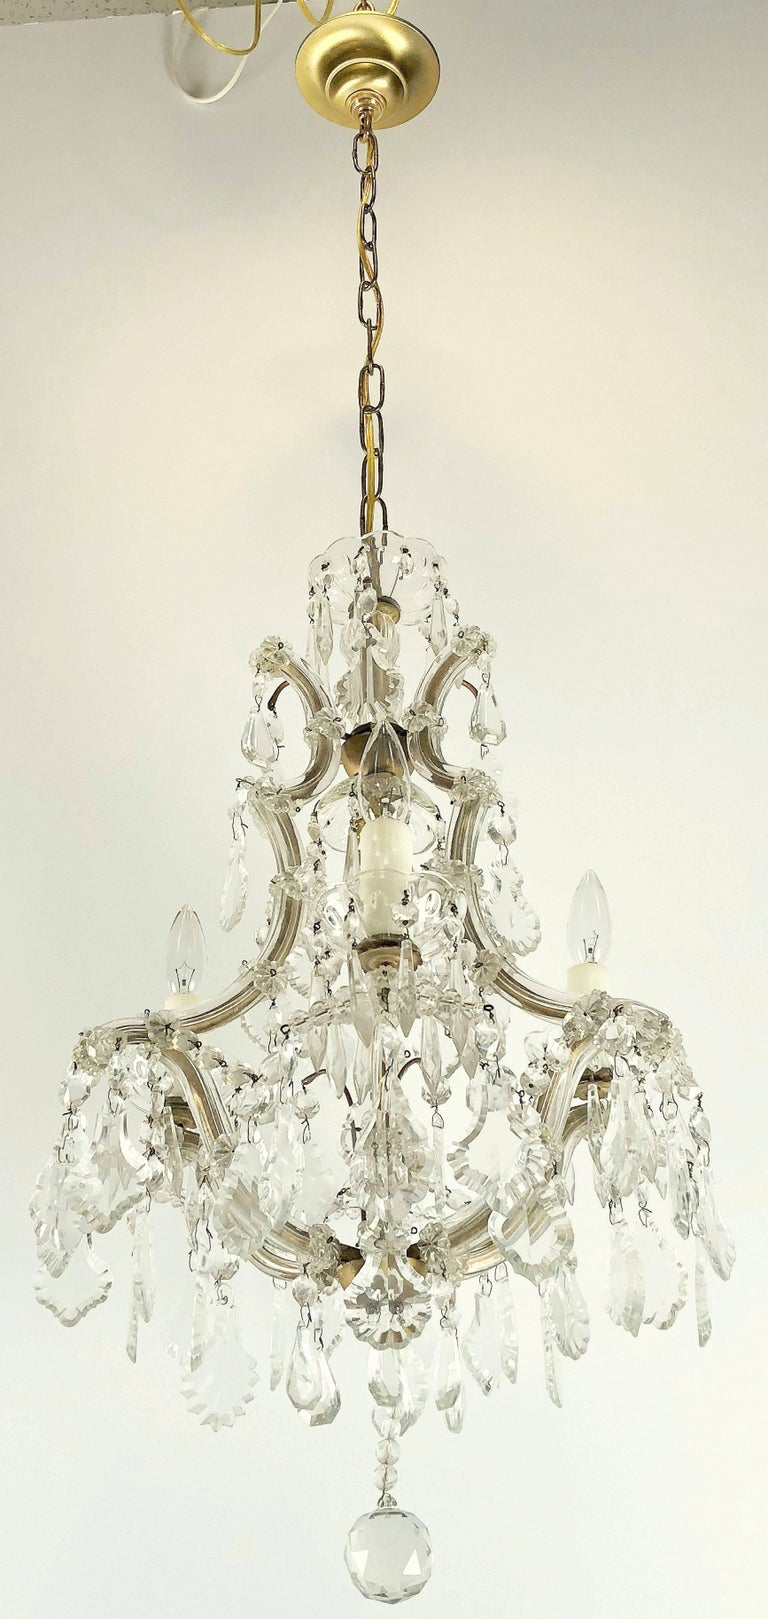 A lovely Maria Theresa four-light chandelier (or hanging fixture) of crystal, glass and gilt metal featuring serpentine arms, each candle light with dangling pendants and decorative bobeches.